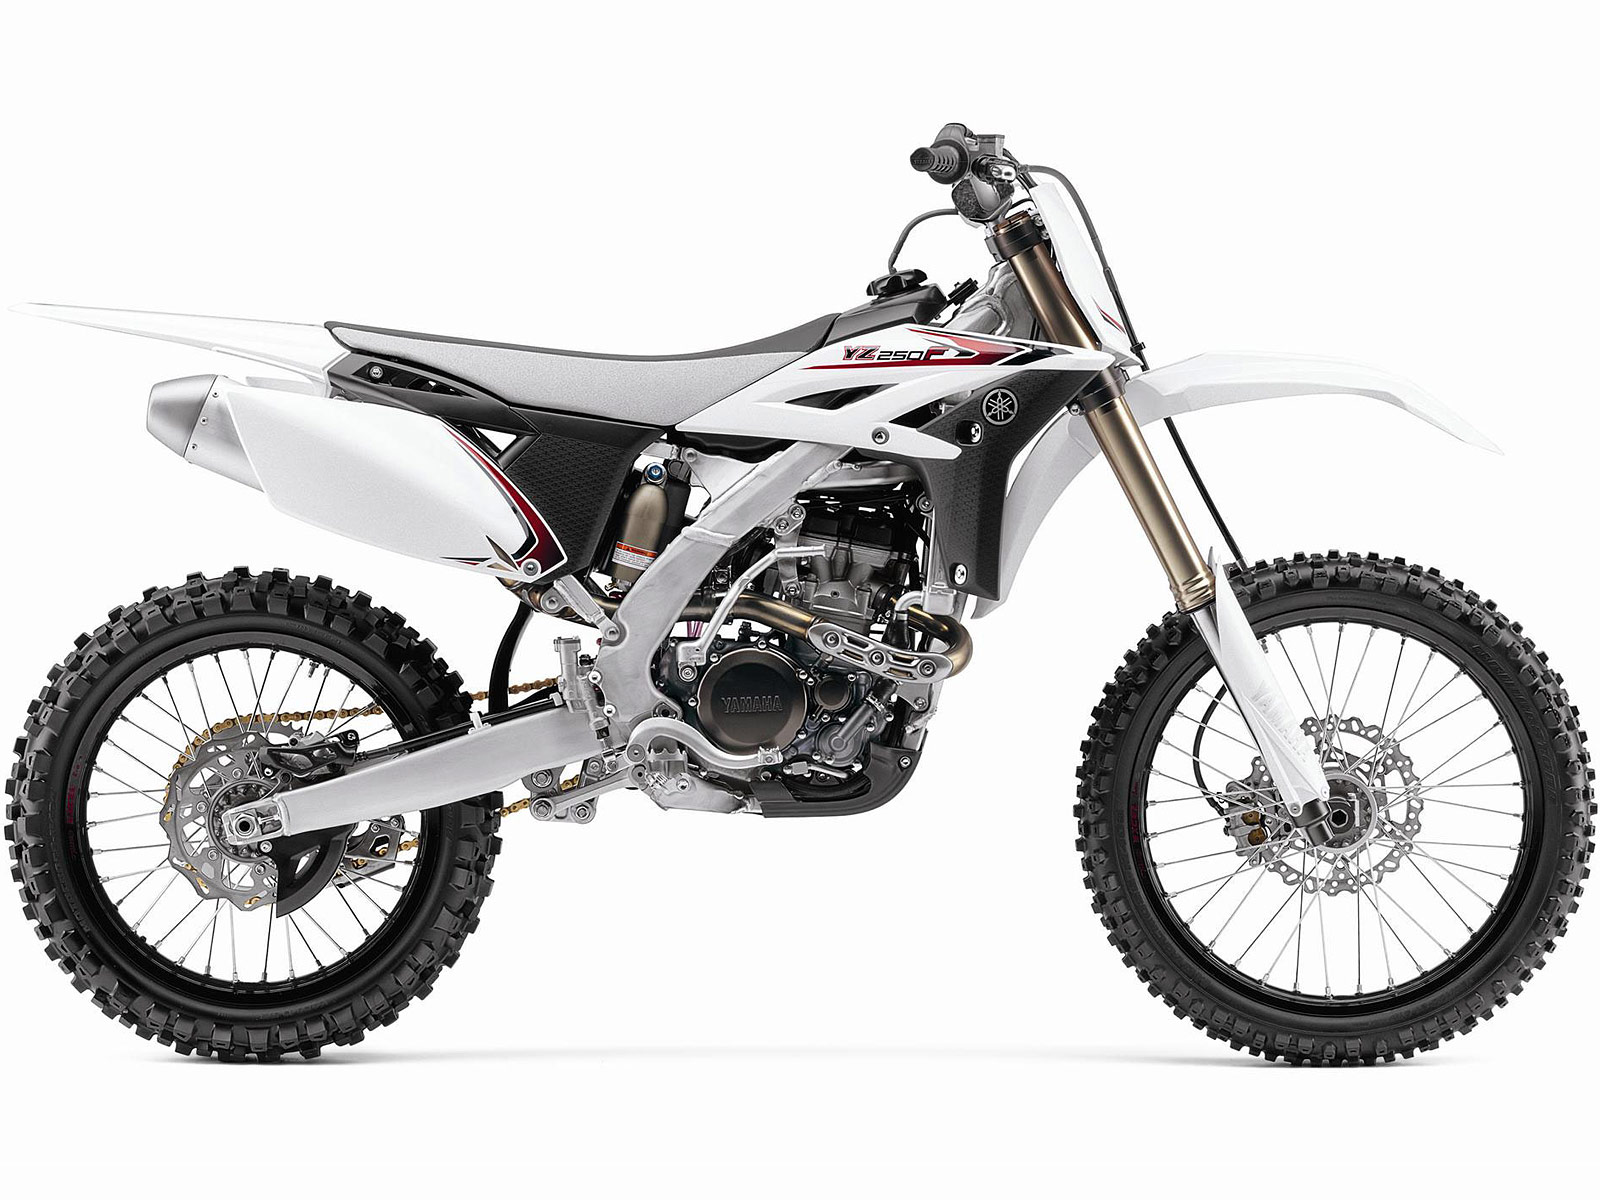 2012 yamaha yz250f pictures and specifications